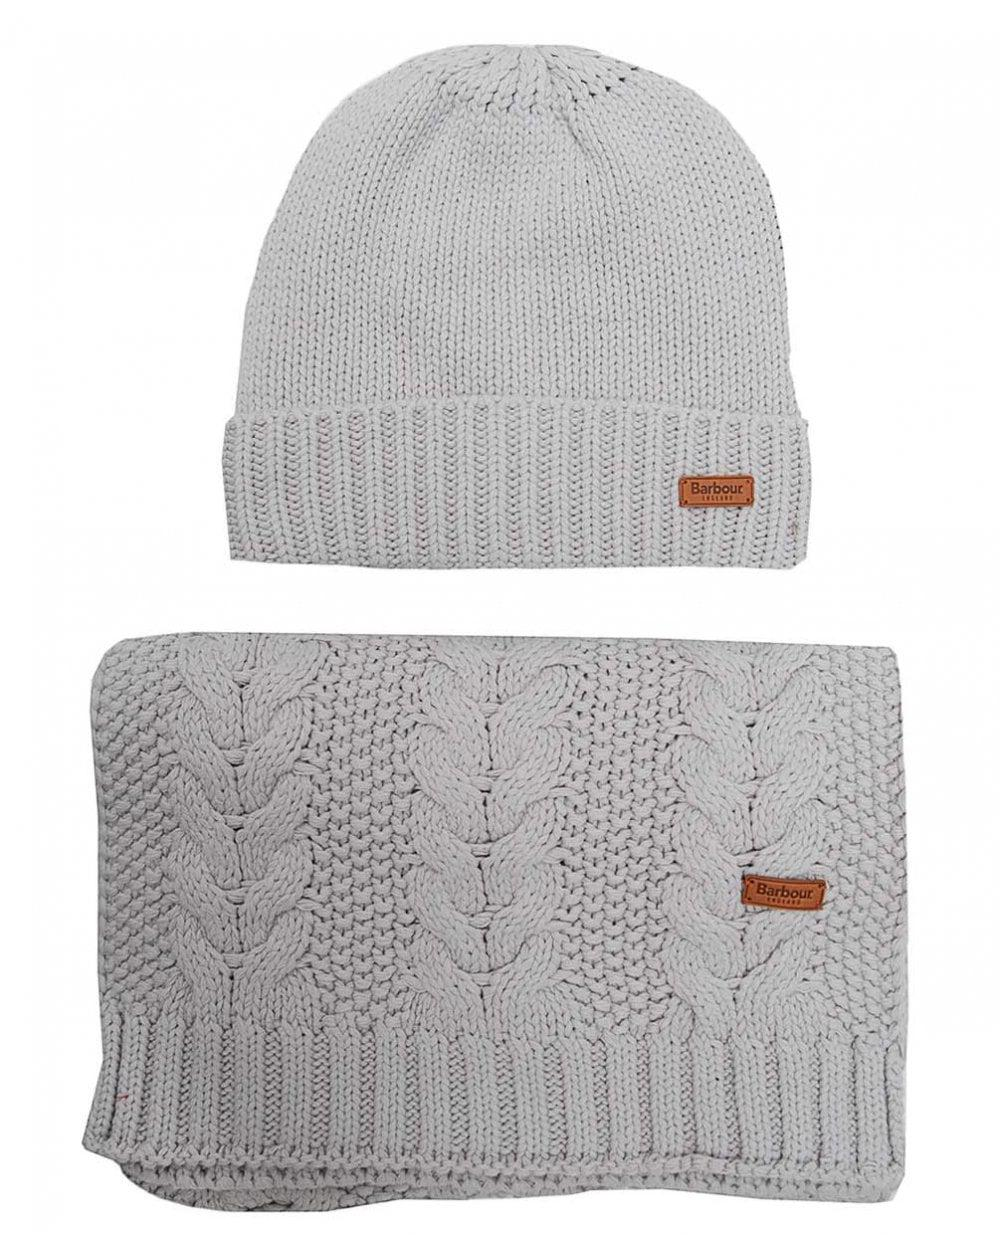 Lyst - Barbour Cable Hat And Scarf Set in Gray 2e2784d474ca